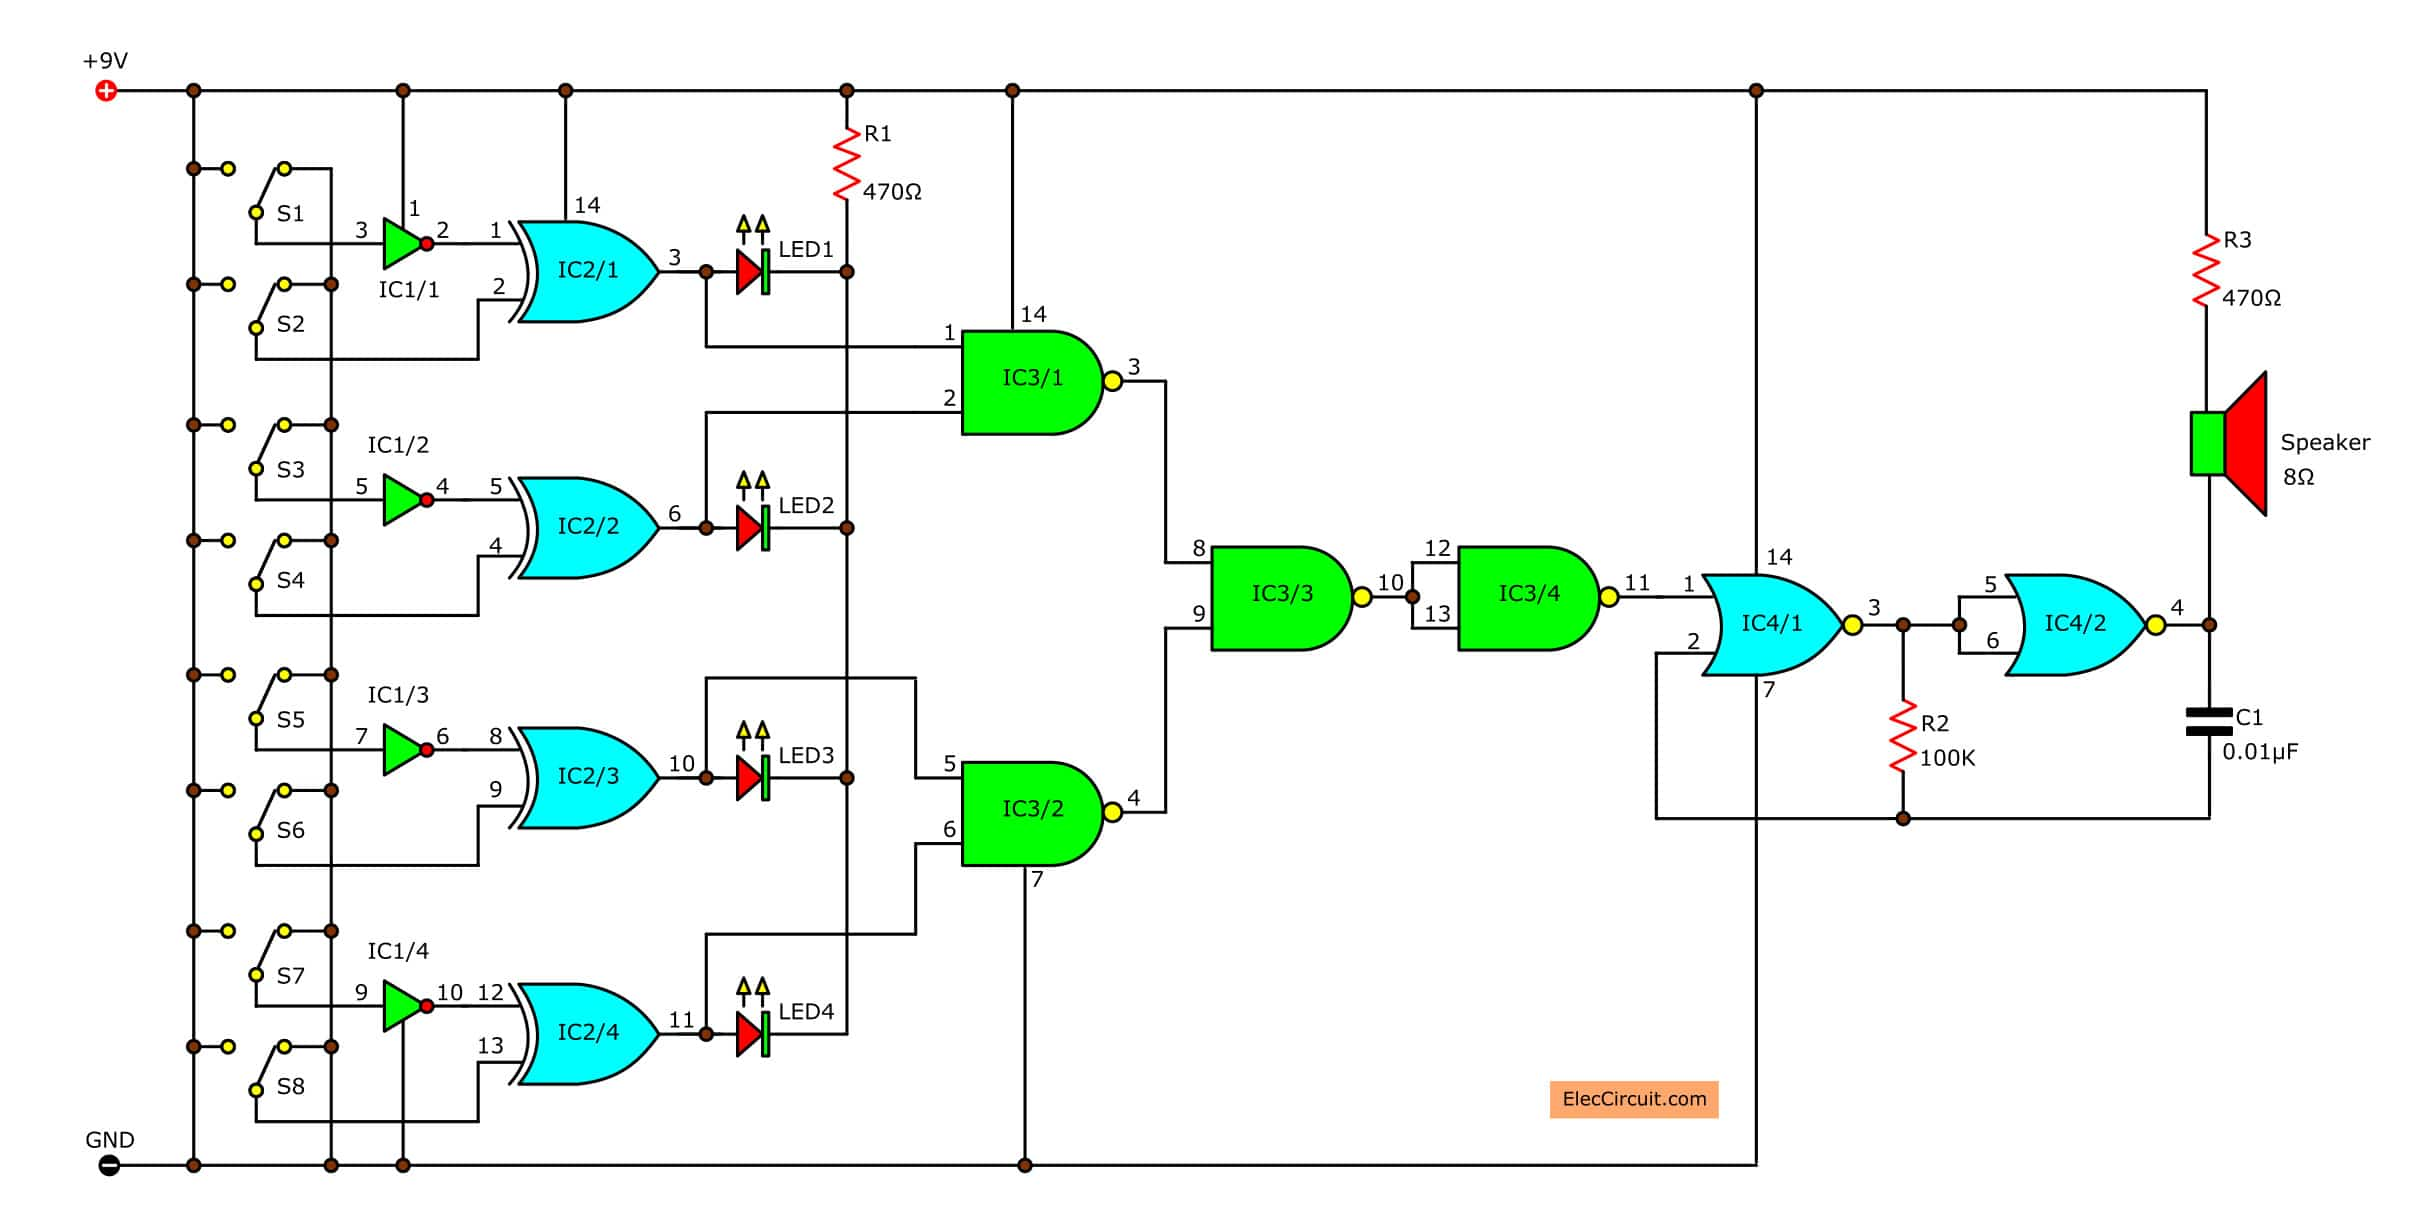 Logic Probe Circuit Diagram Project Basic Electronics Projects And Circuitdiagram Amplifiercircuit Ultrasonictransducerdrivecircuit Logical Guessing Game Eleccircuit Com Rh